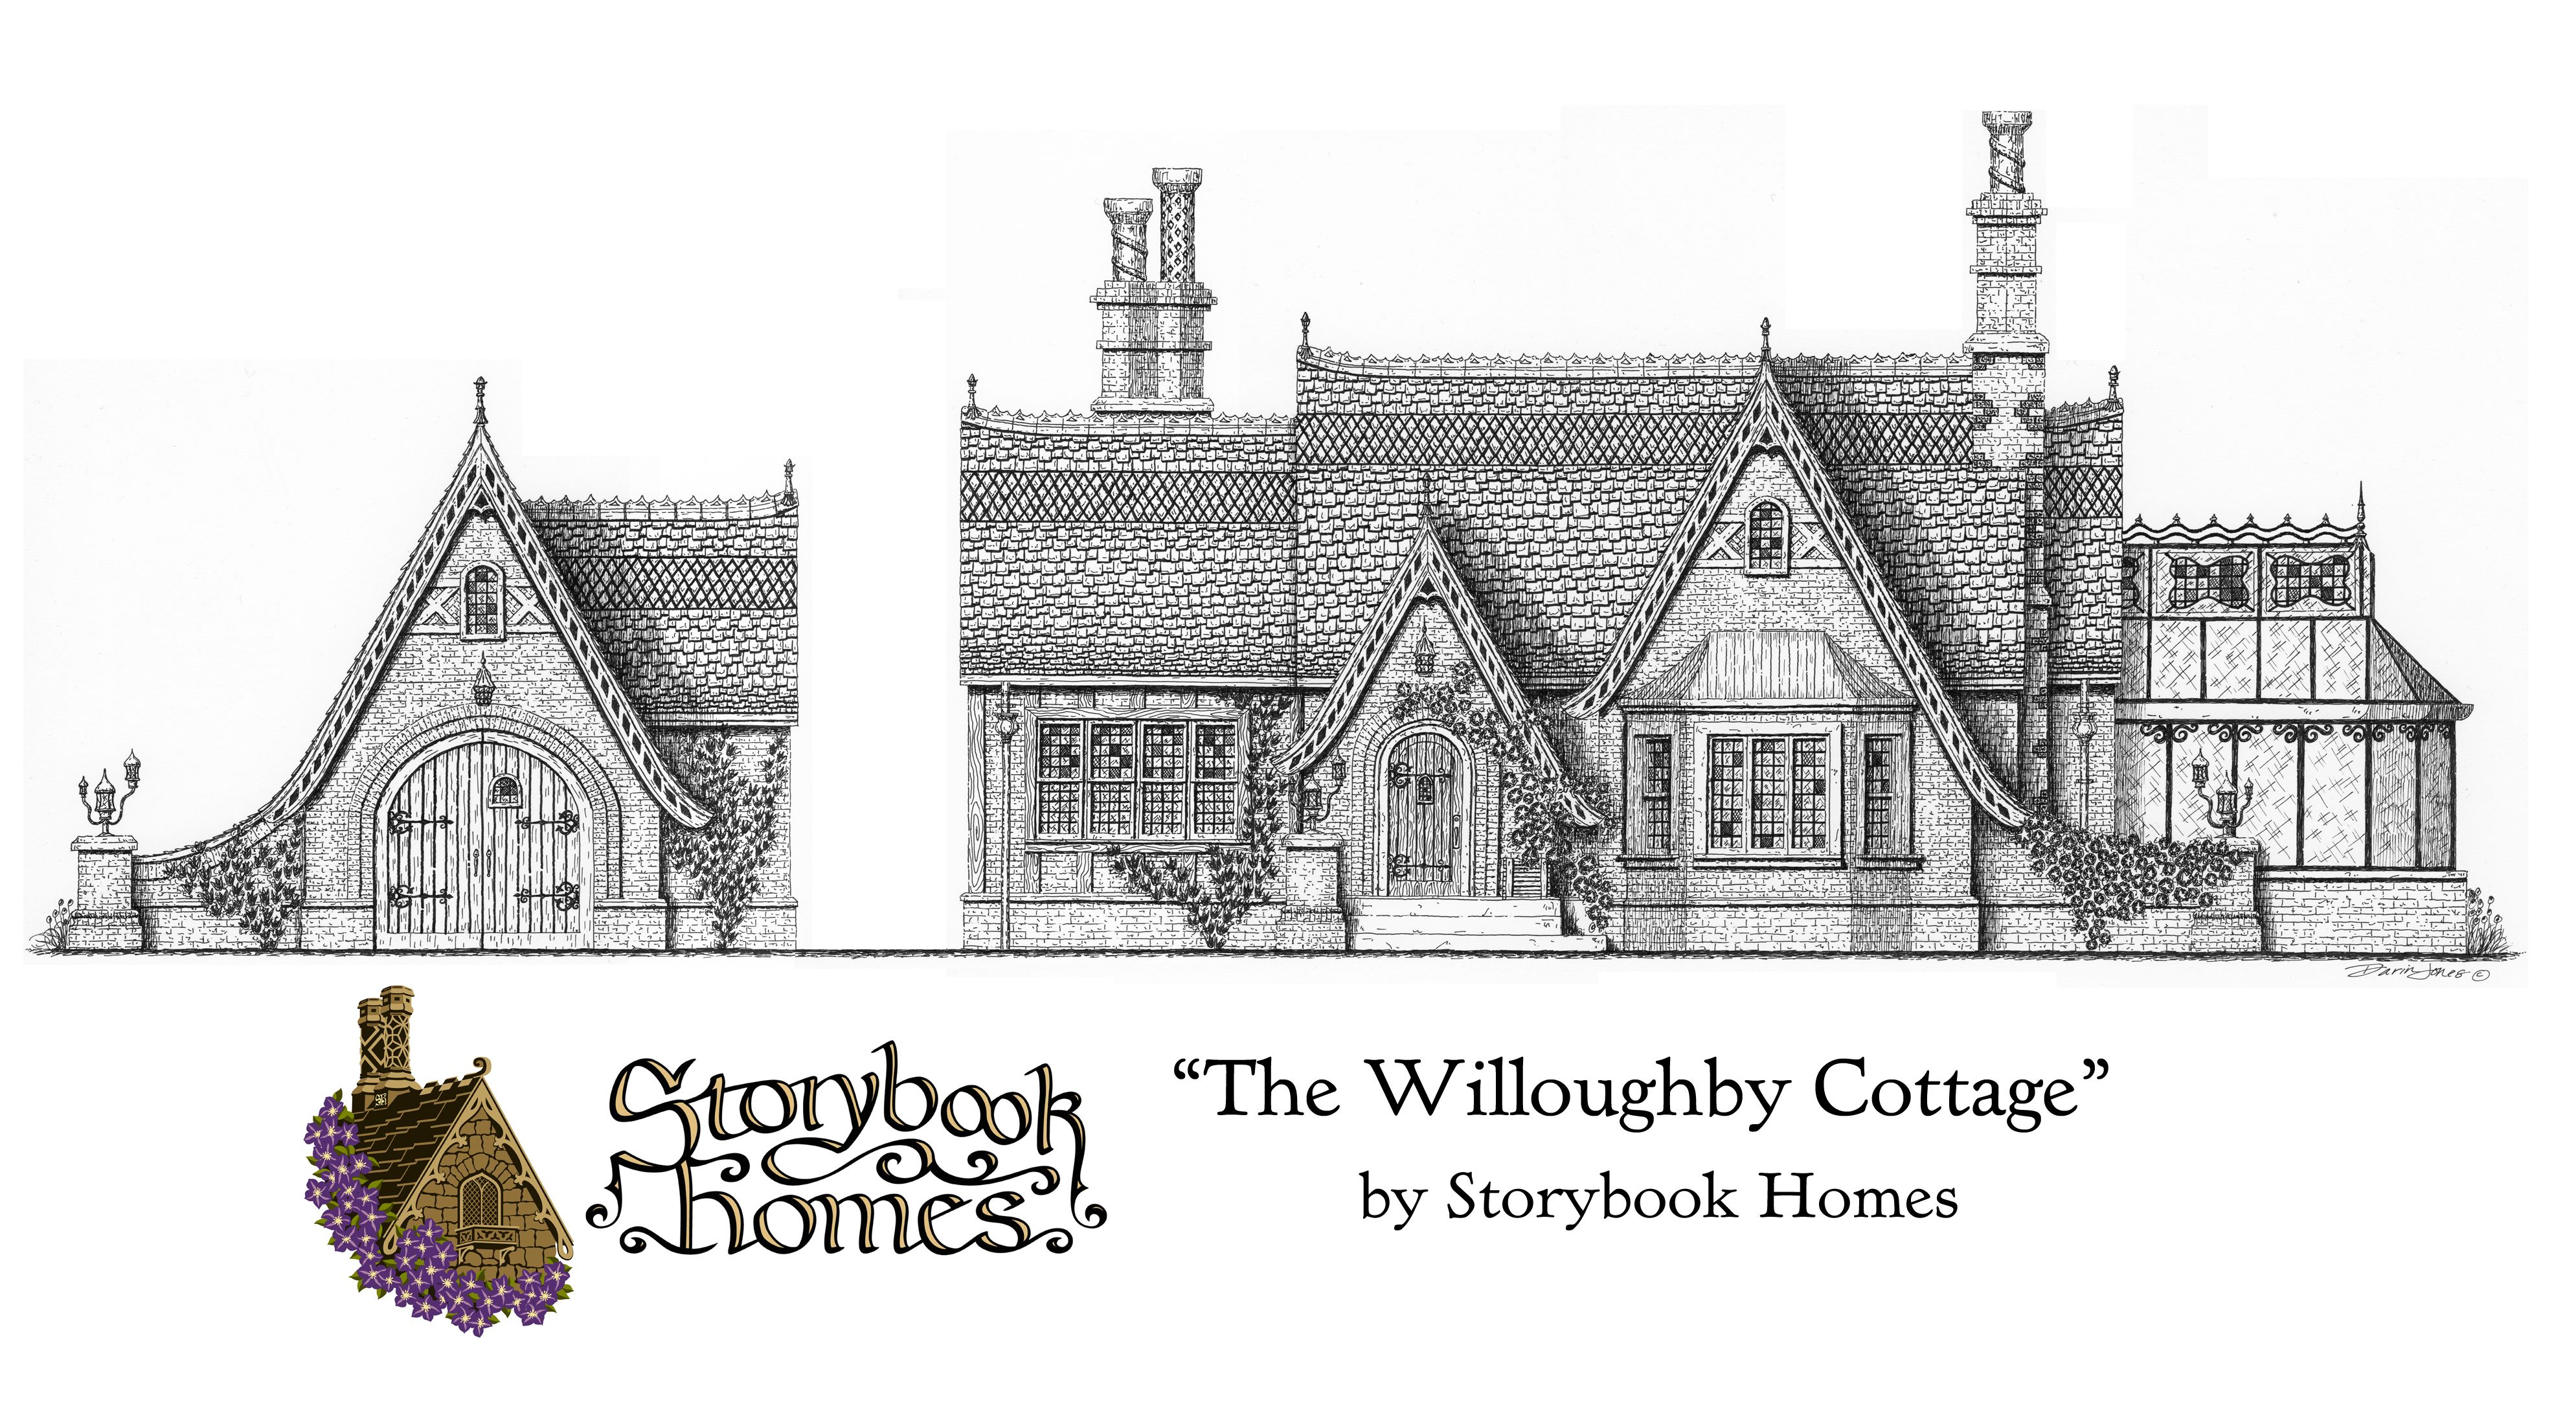 Pin By Storybook Homes On Storybook Homes Storybook House Plan Storybook Homes Storybook Cottage